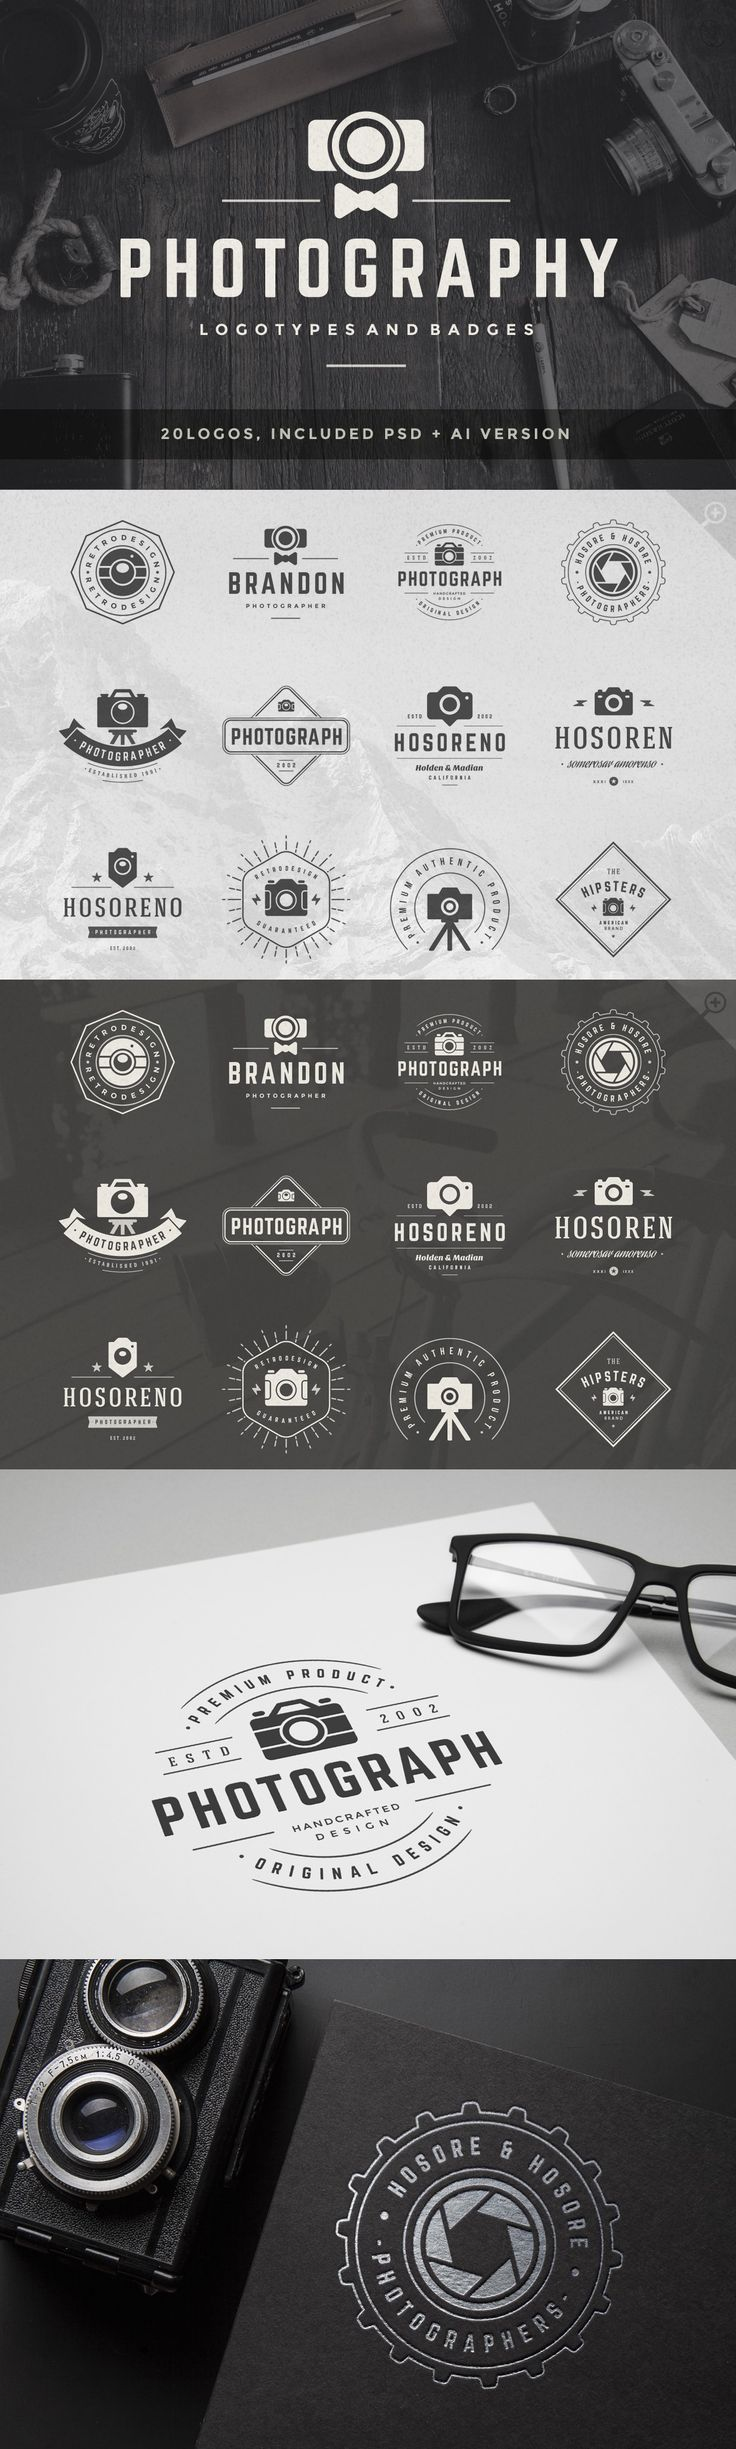 20 Photography Logos and Badges Templates PSD #design Download: https://creativemarket.com/VasyaKo/362199?u=ksioks http://jrstudioweb.com/diseno-grafico/diseno-de-logotipos/